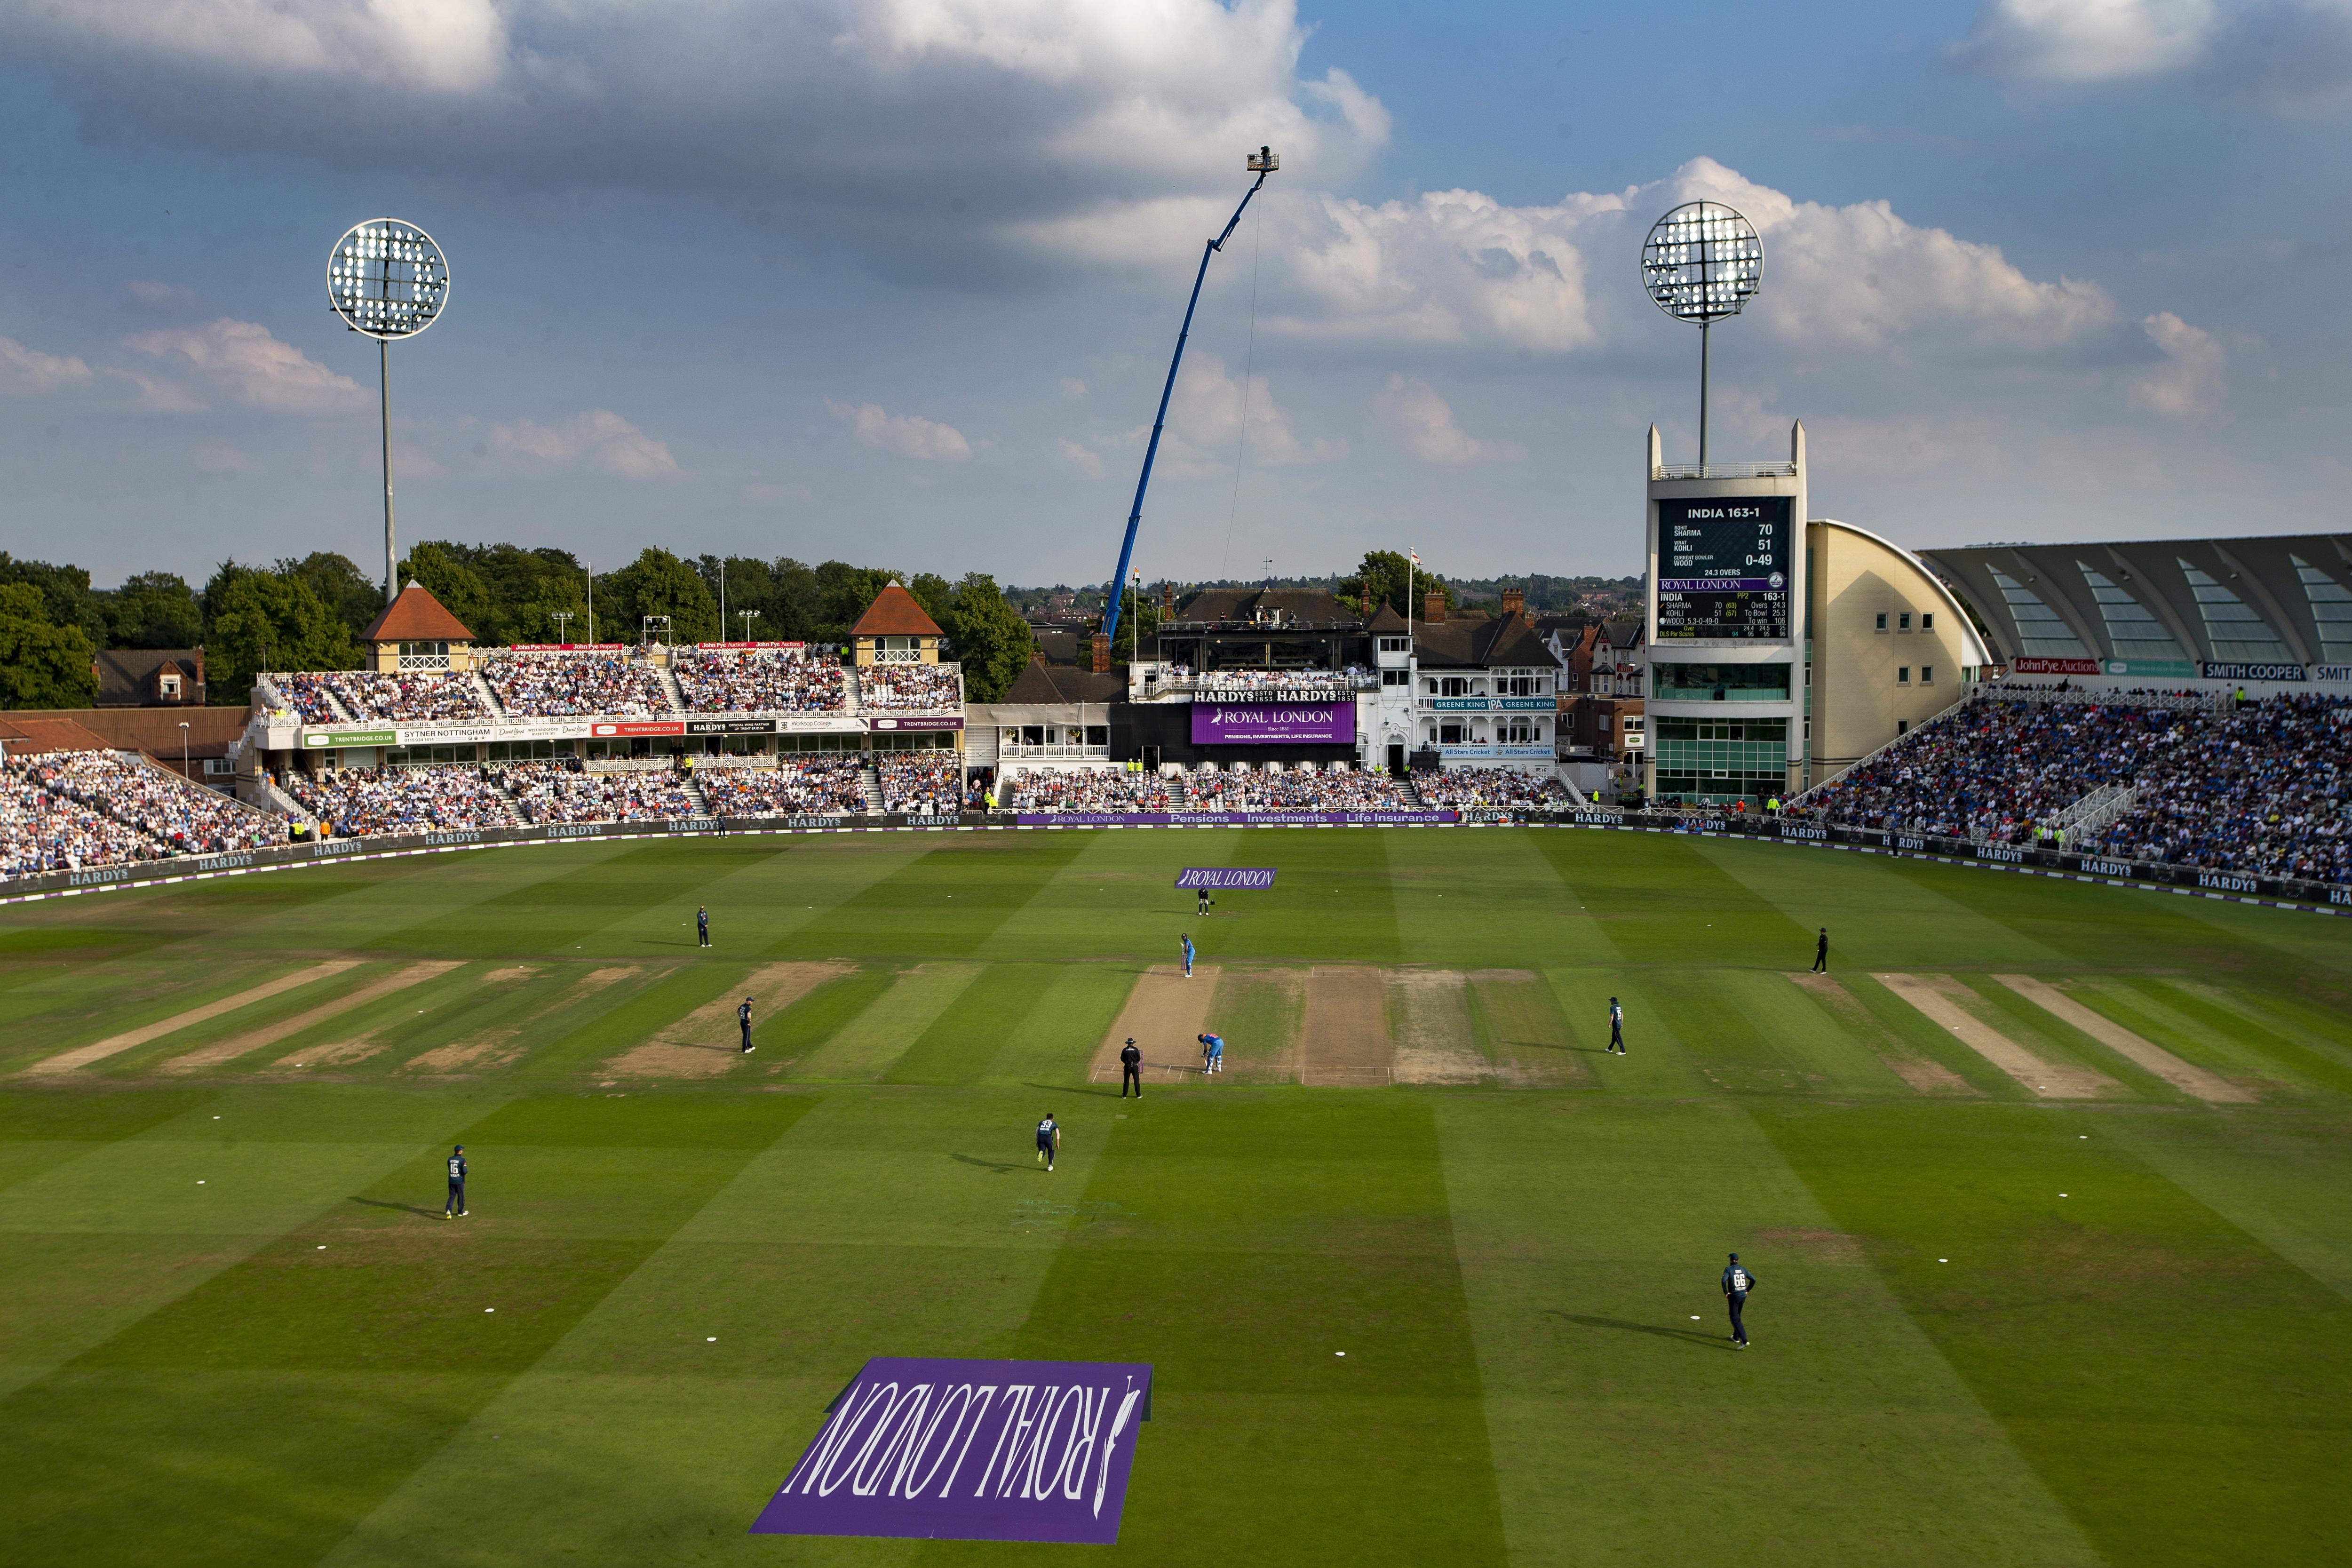 Trent Bridge has become a notorious bogey ground for the Baggy Greens